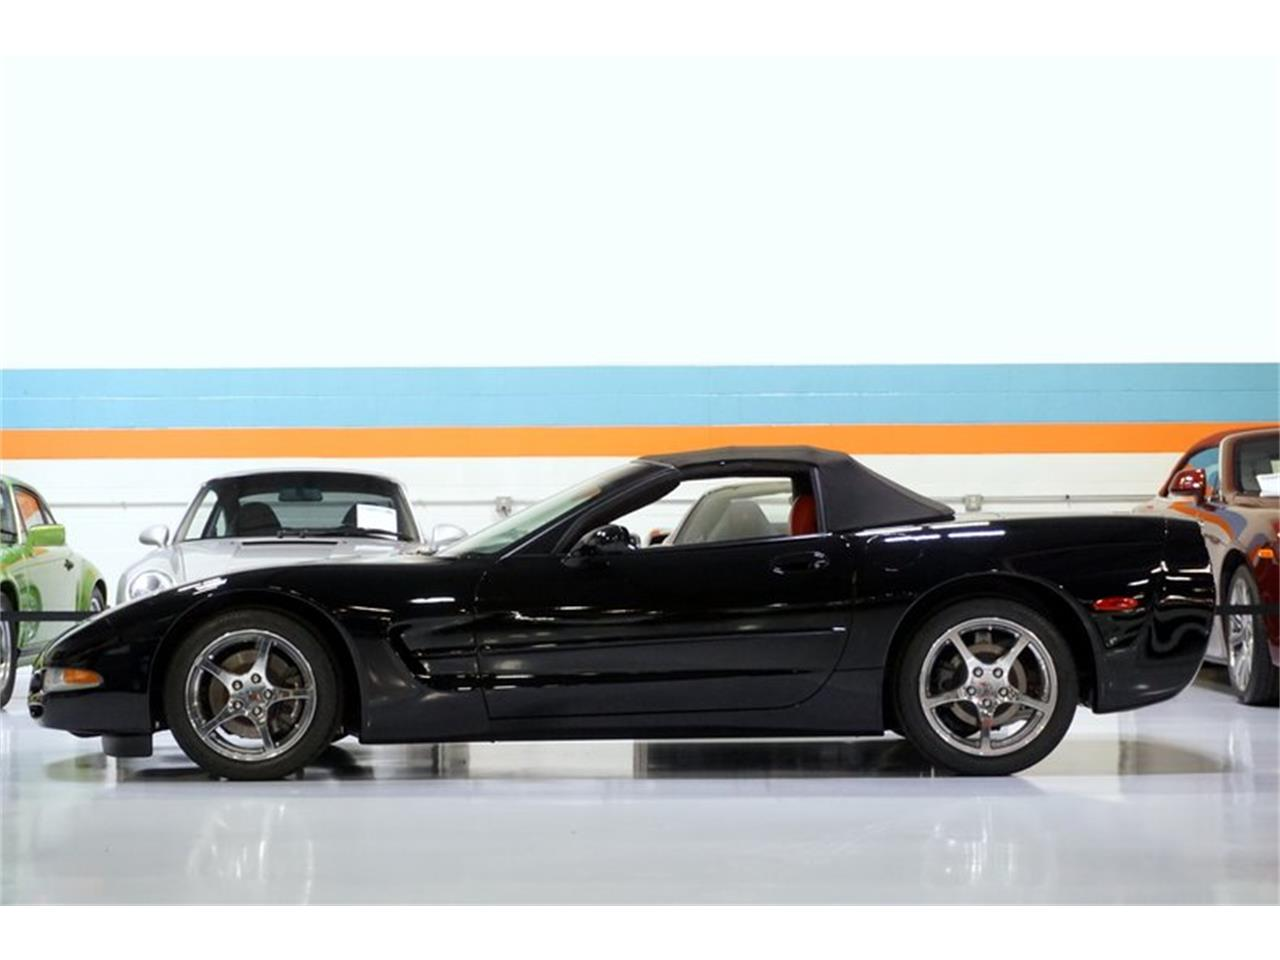 2004 Chevrolet Corvette (CC-1042213) for sale in Solon, Ohio